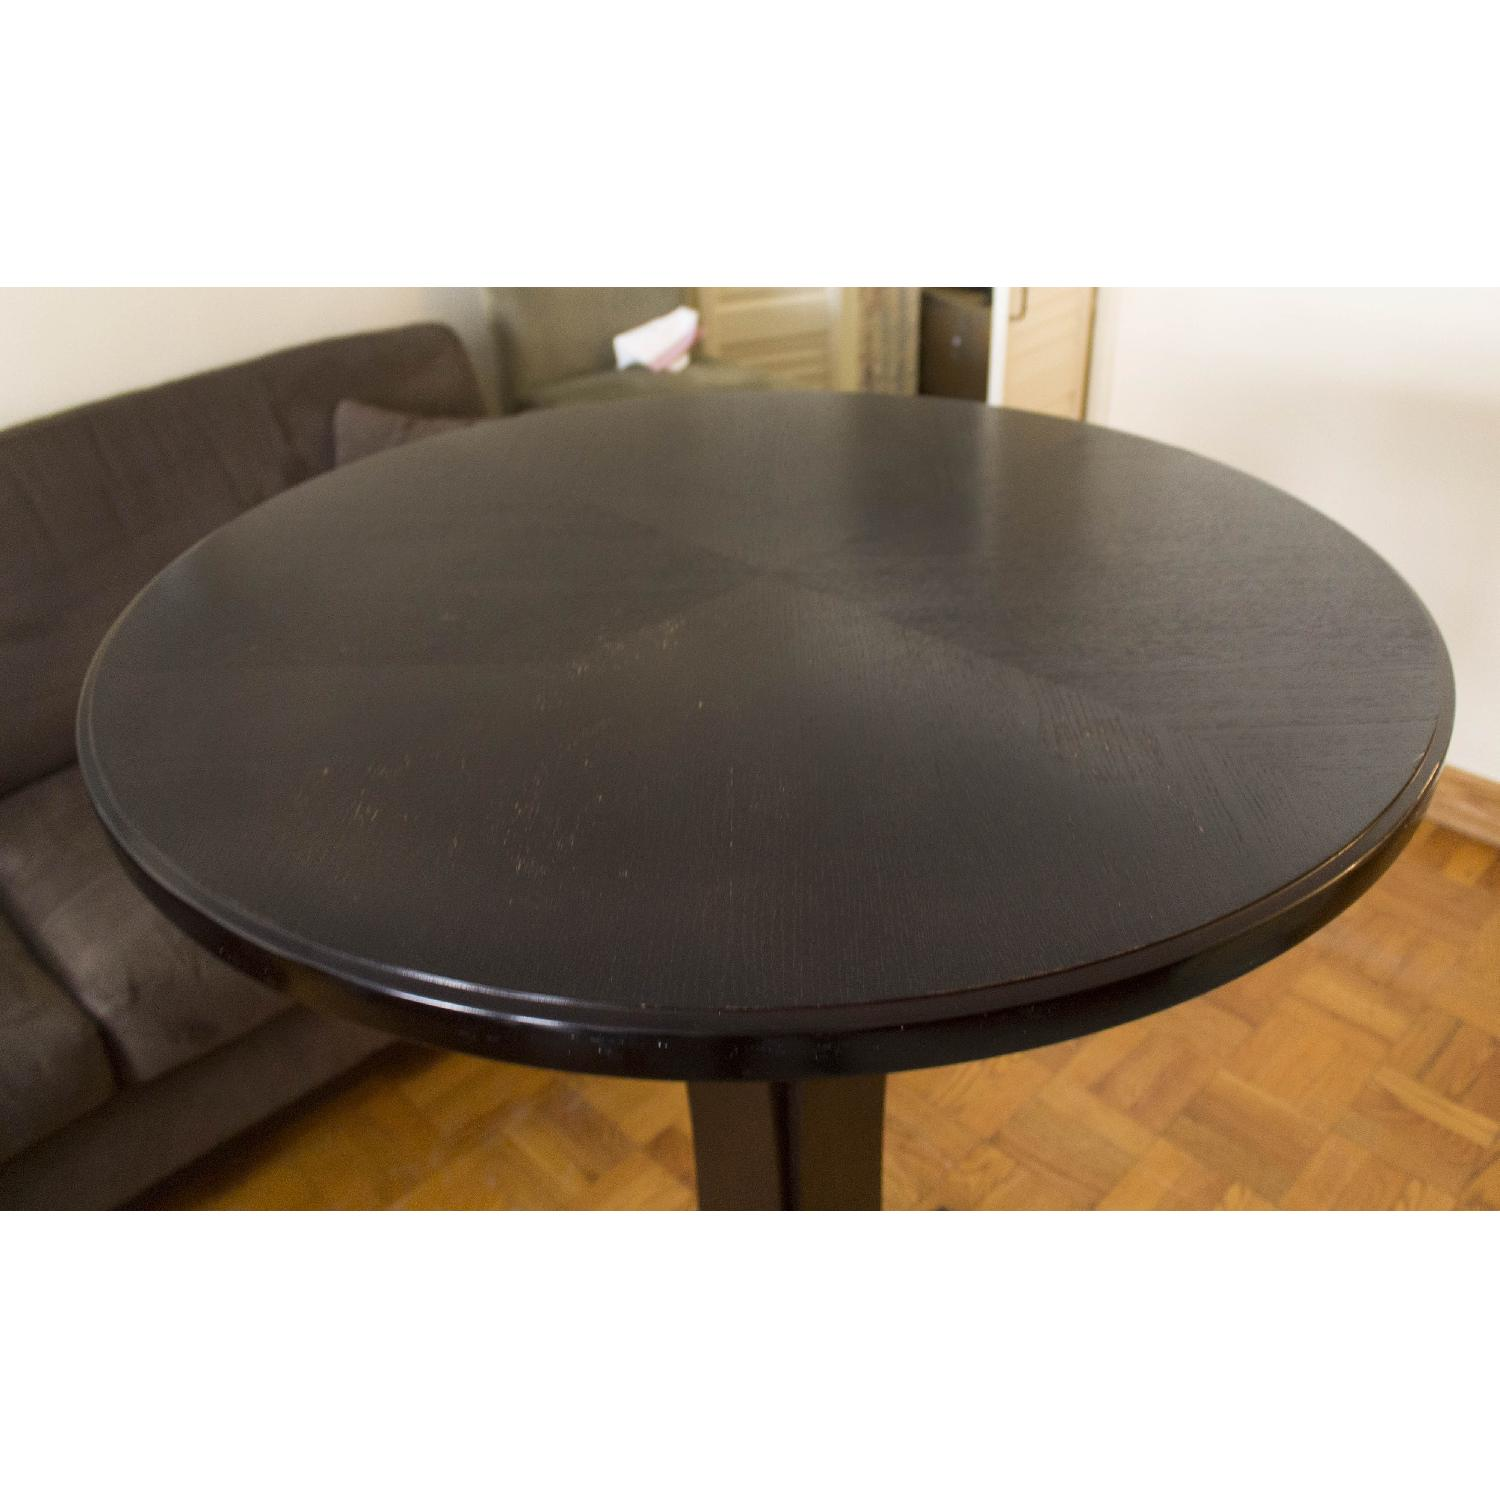 Crate & Barrel High Cafe Table - image-2